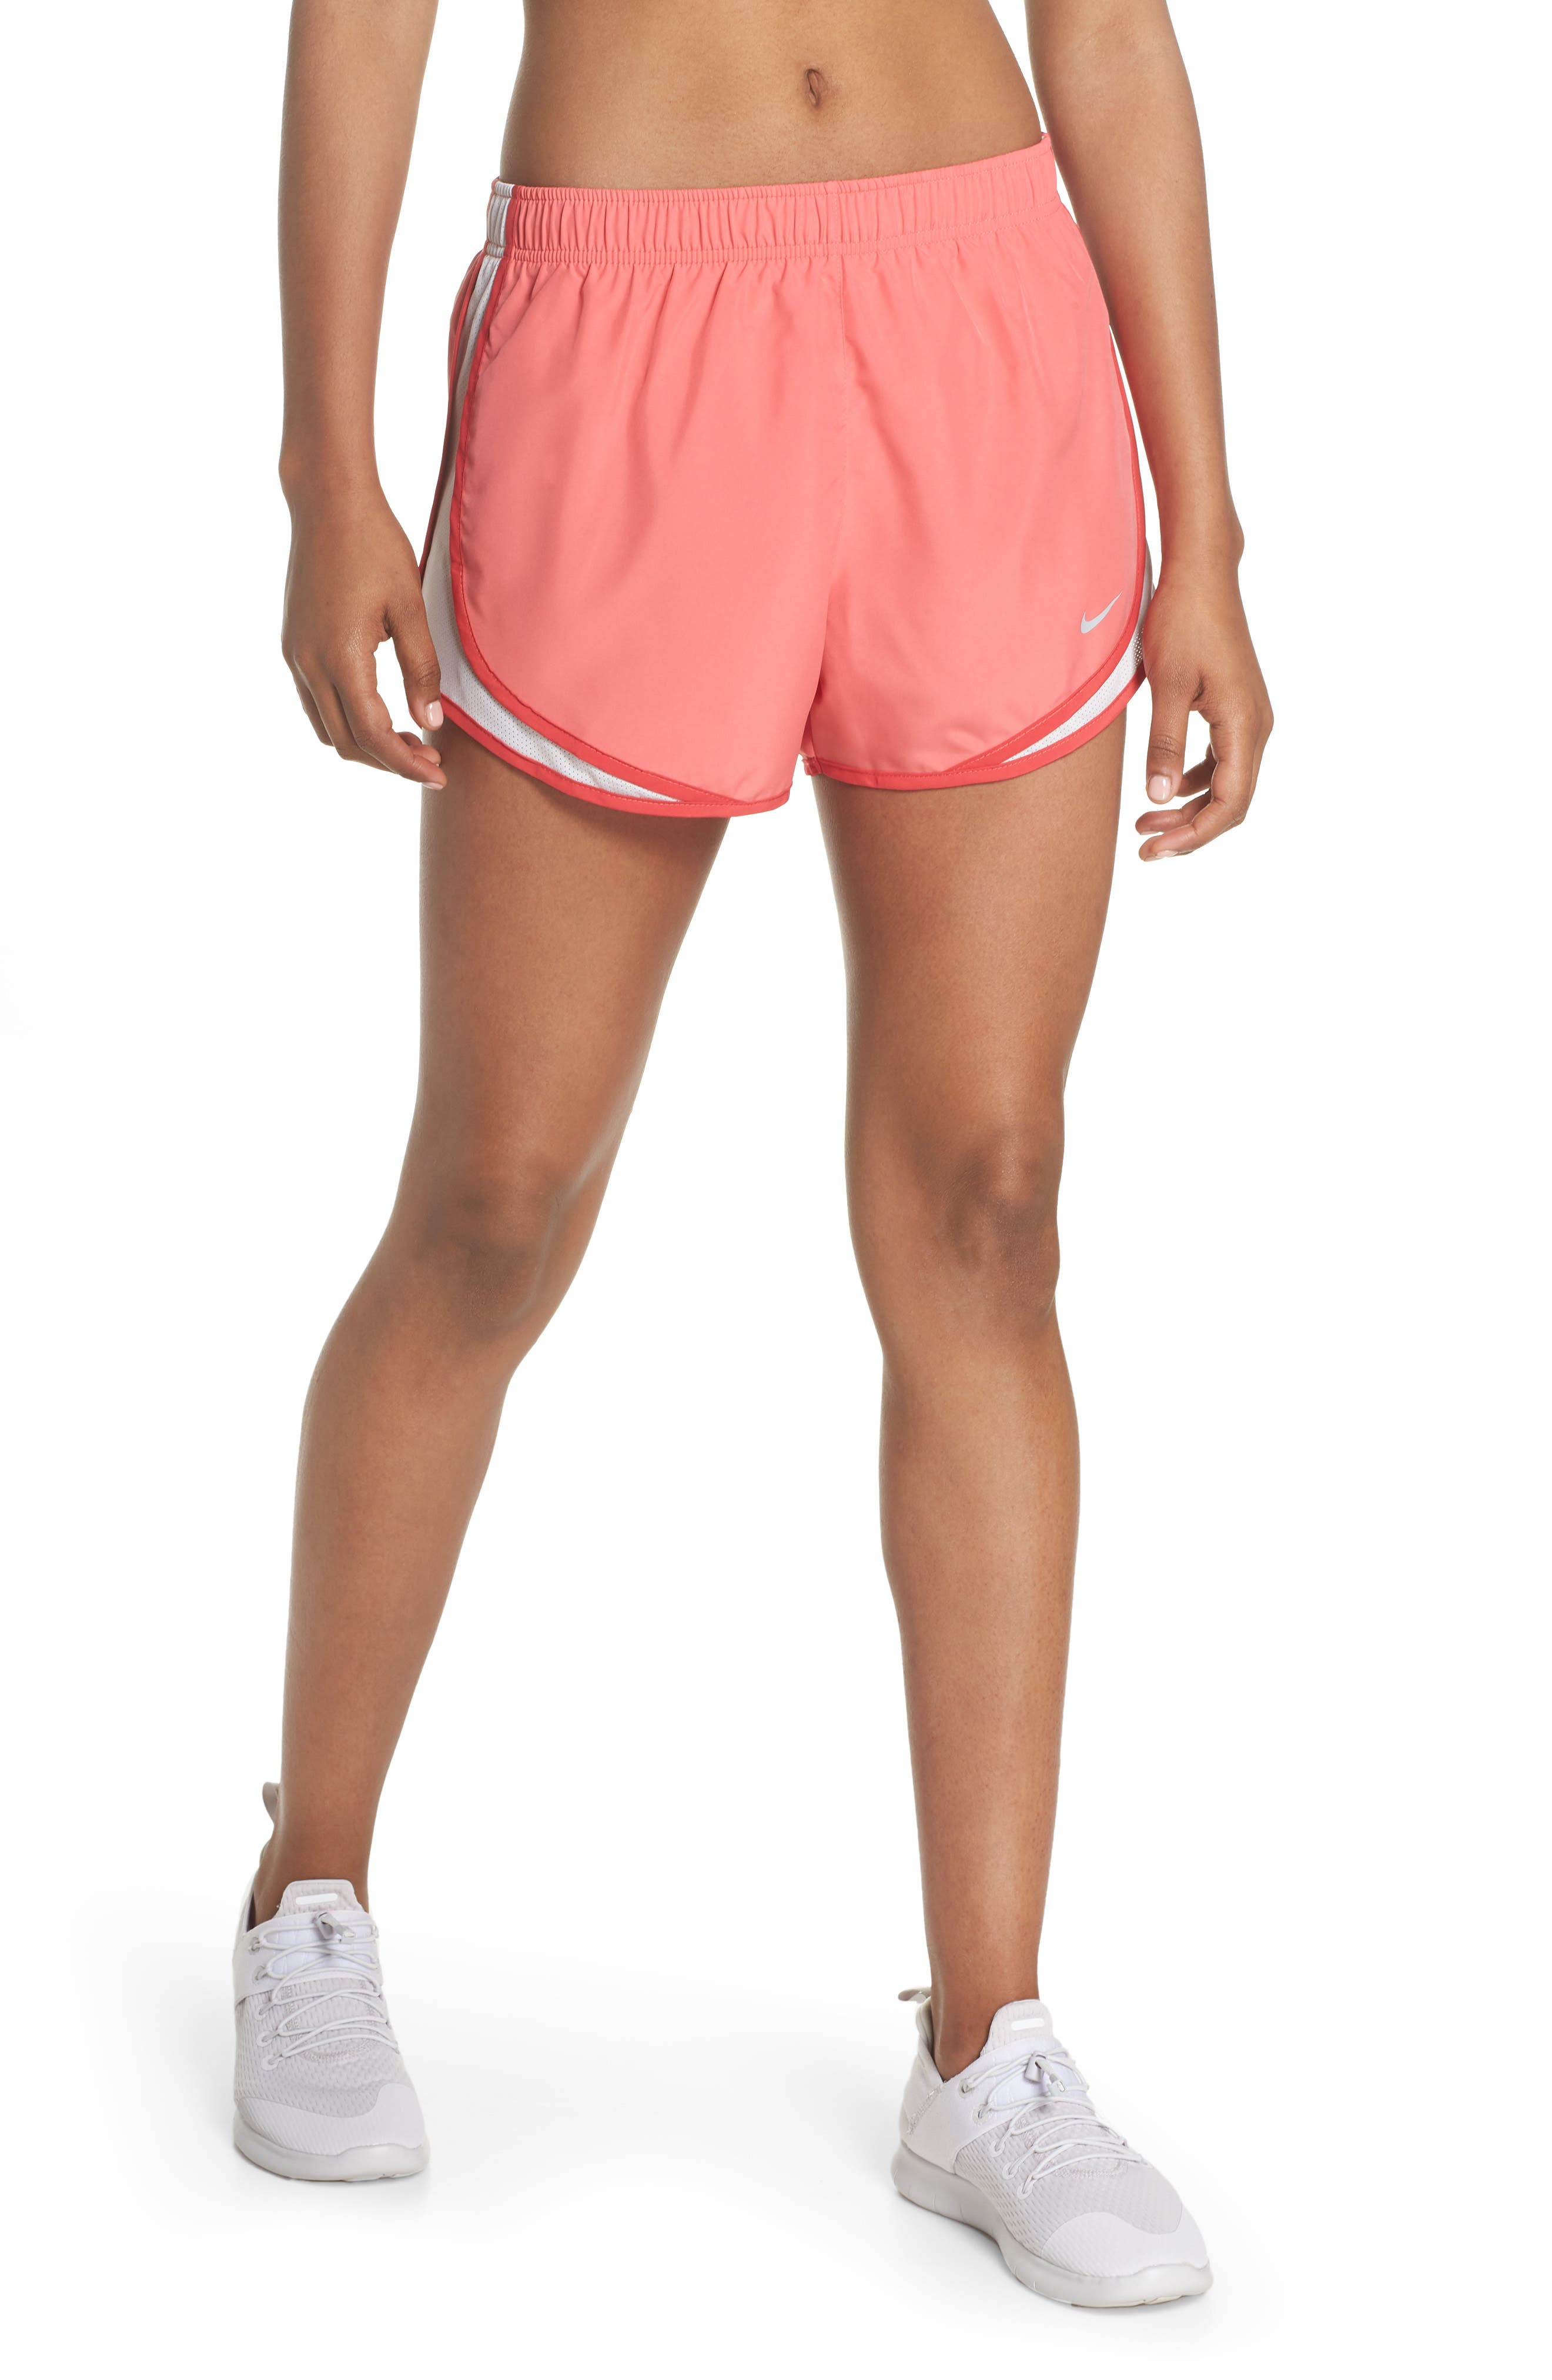 Dry Tempo Running Shorts,                         Main,                         color, Coral/ Vast Grey/ Wolf Grey